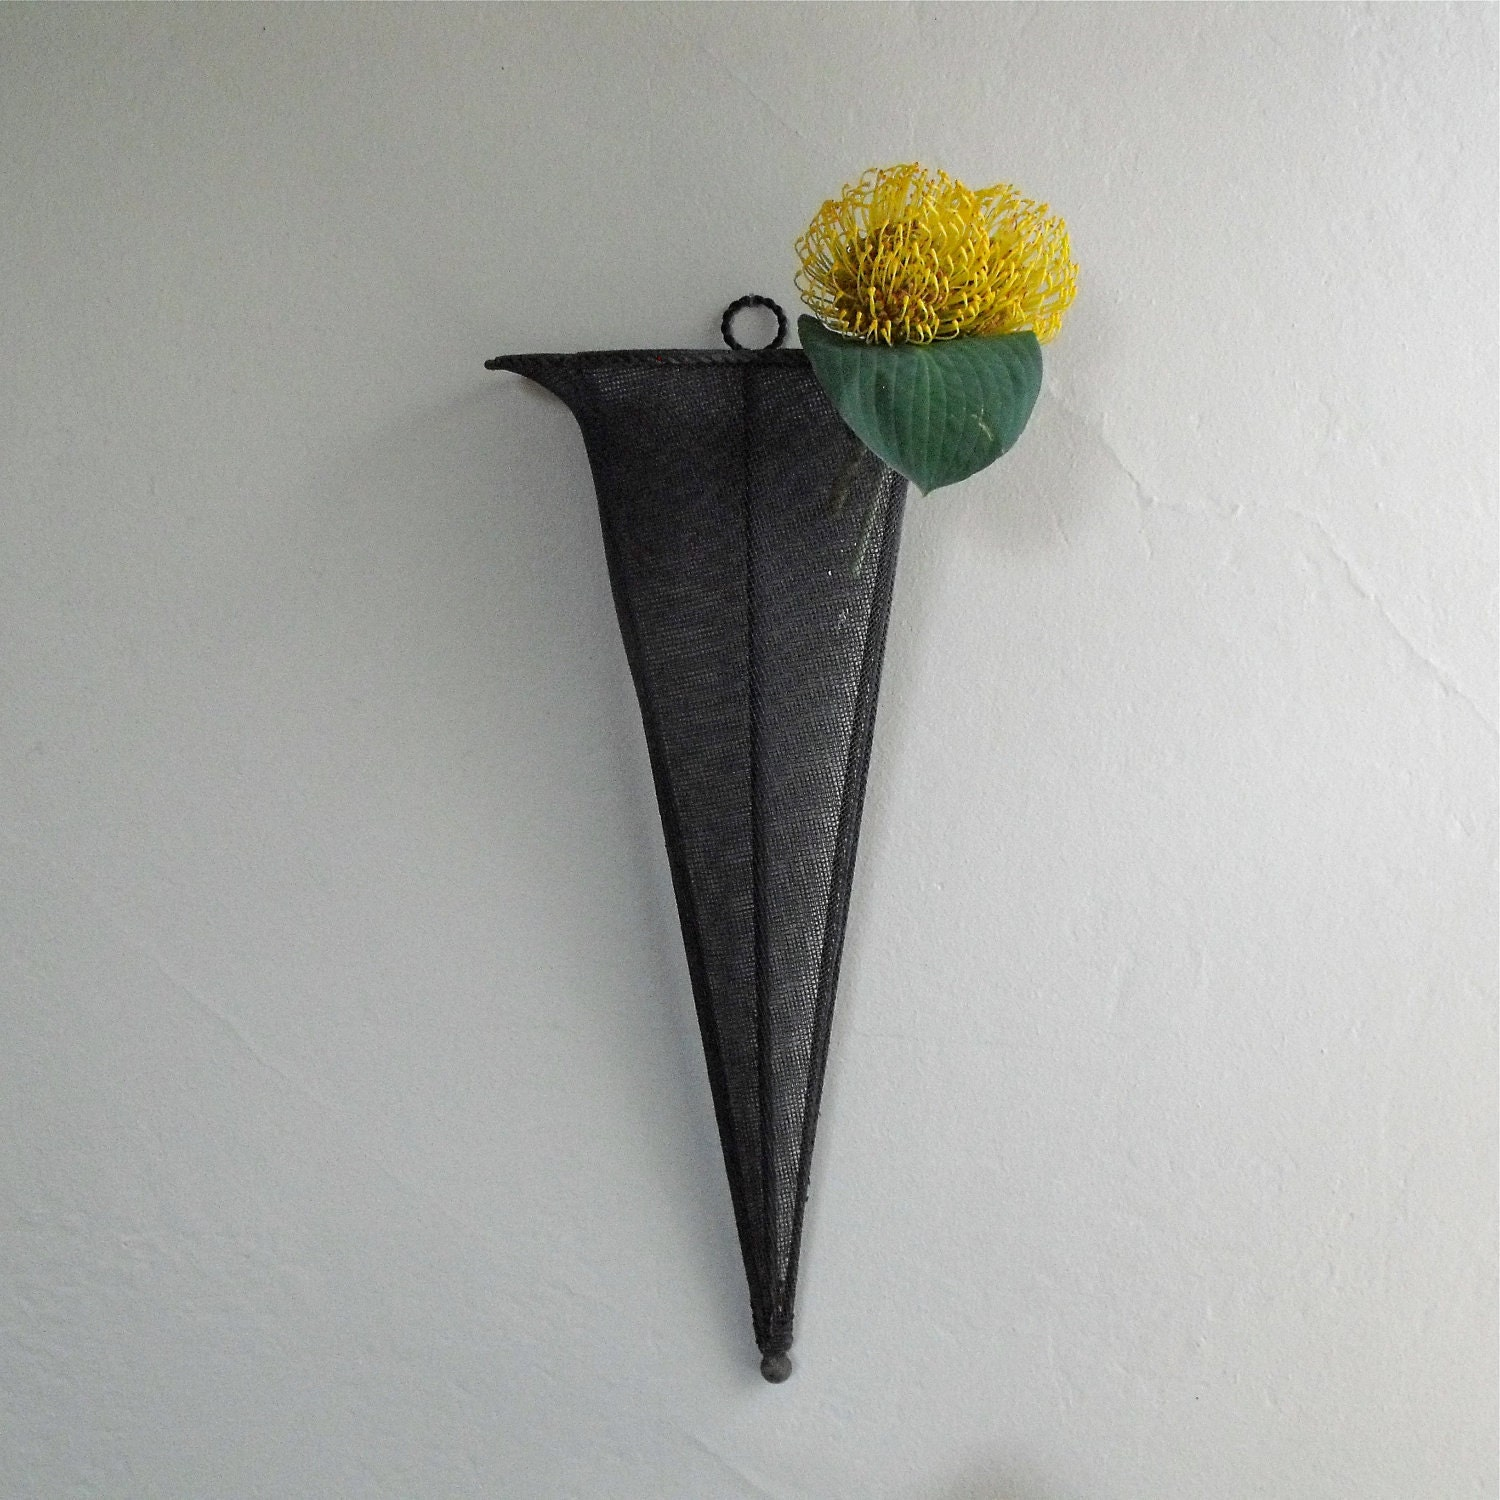 Vintage Wall Pocket Cone Metal Wall Hanging Planter